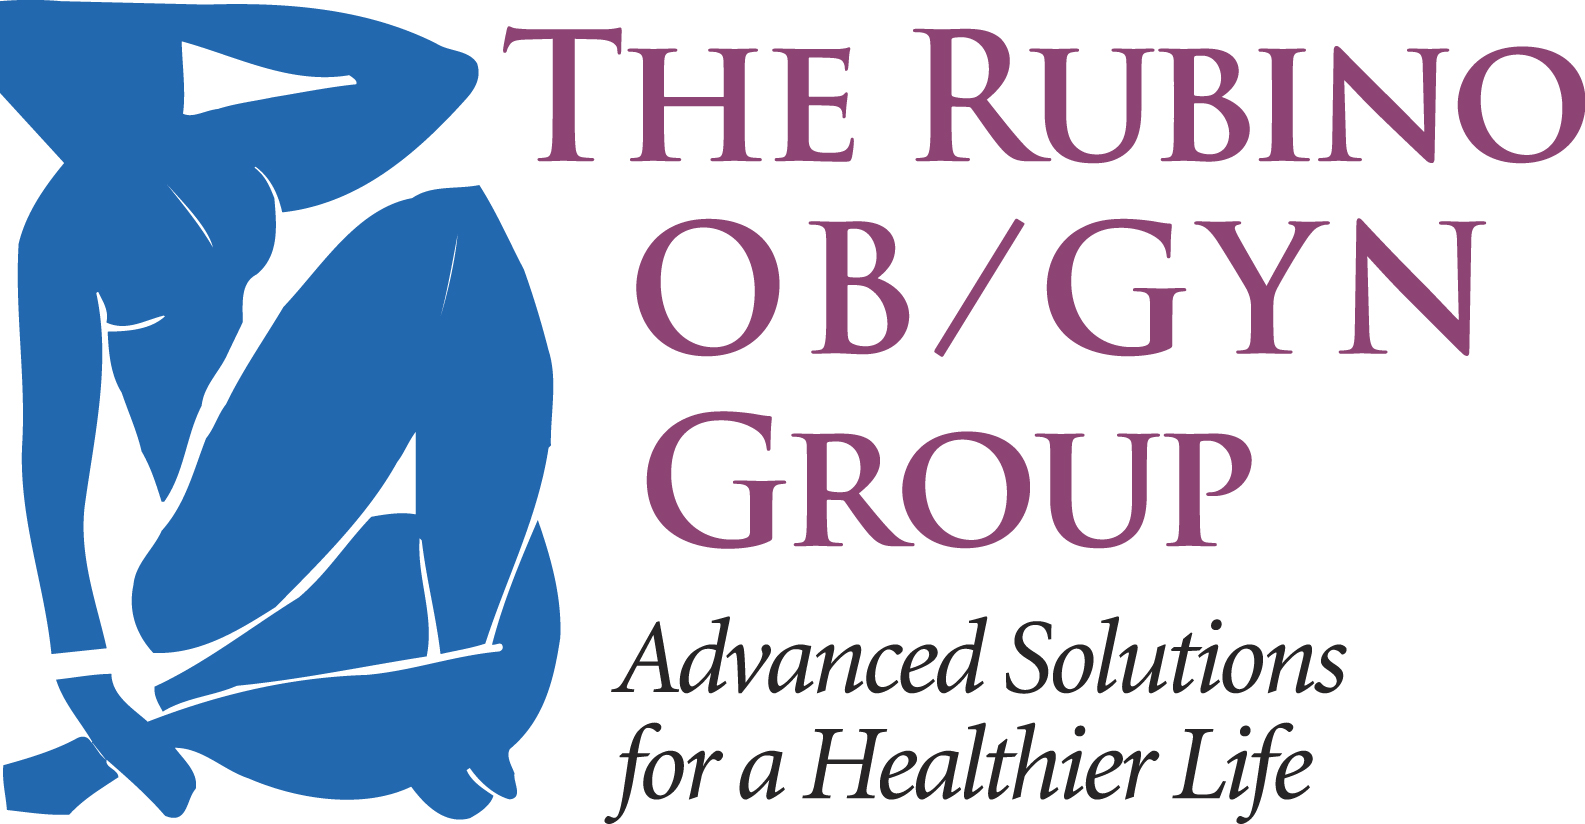 The Rubino OB/GYN Group in West Orange NJ, Summit NJ, Bayonne NJ, Clark NJ, Madison NJ